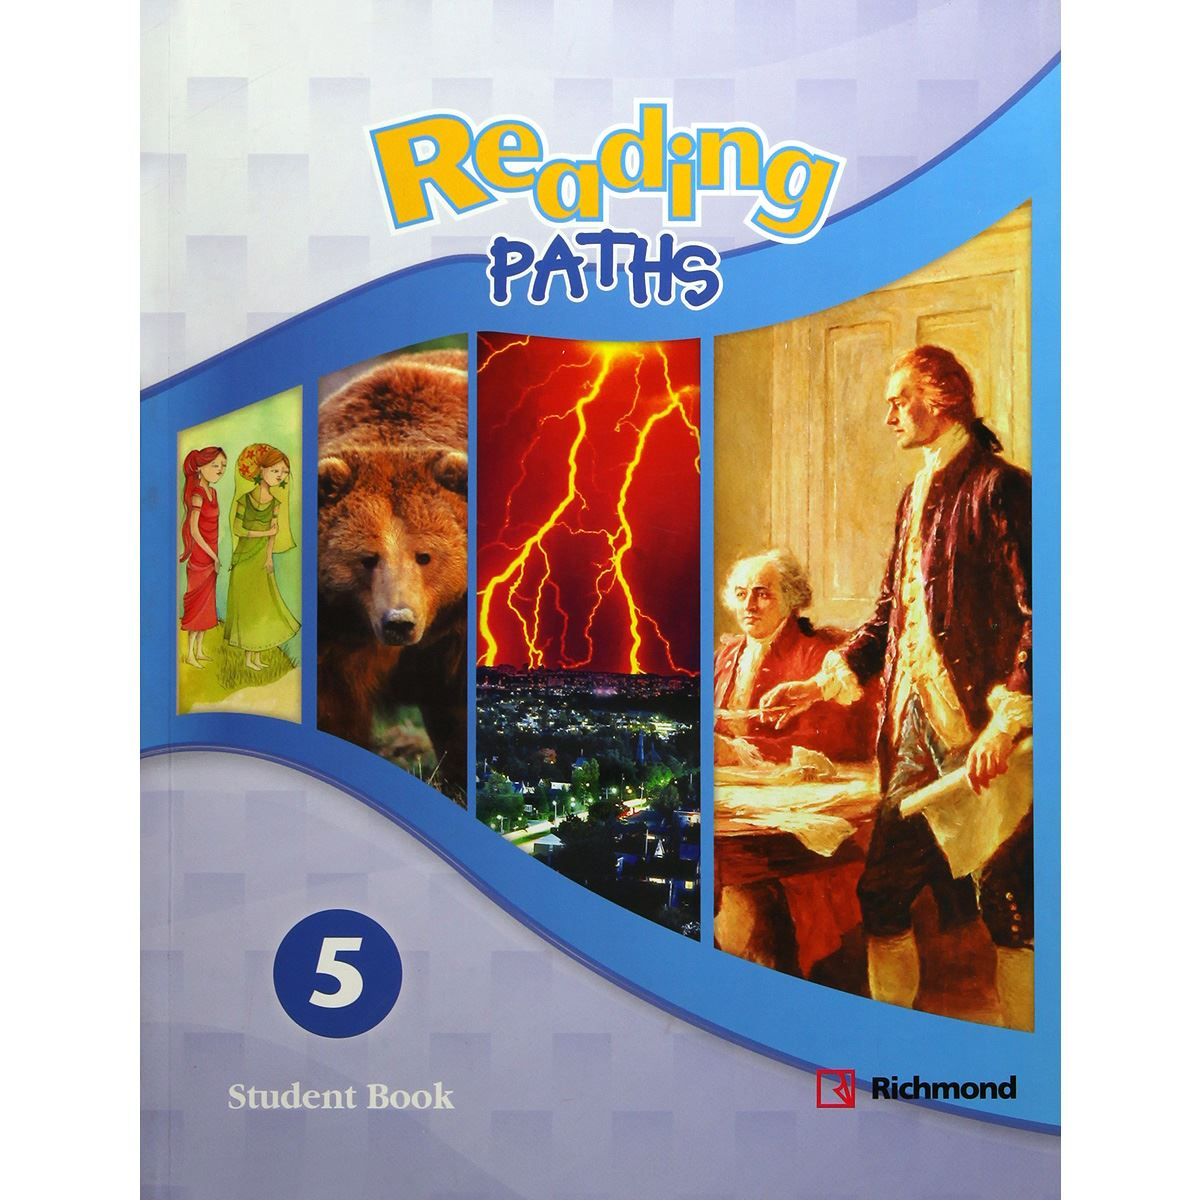 Reading Paths 5 Student,S Book